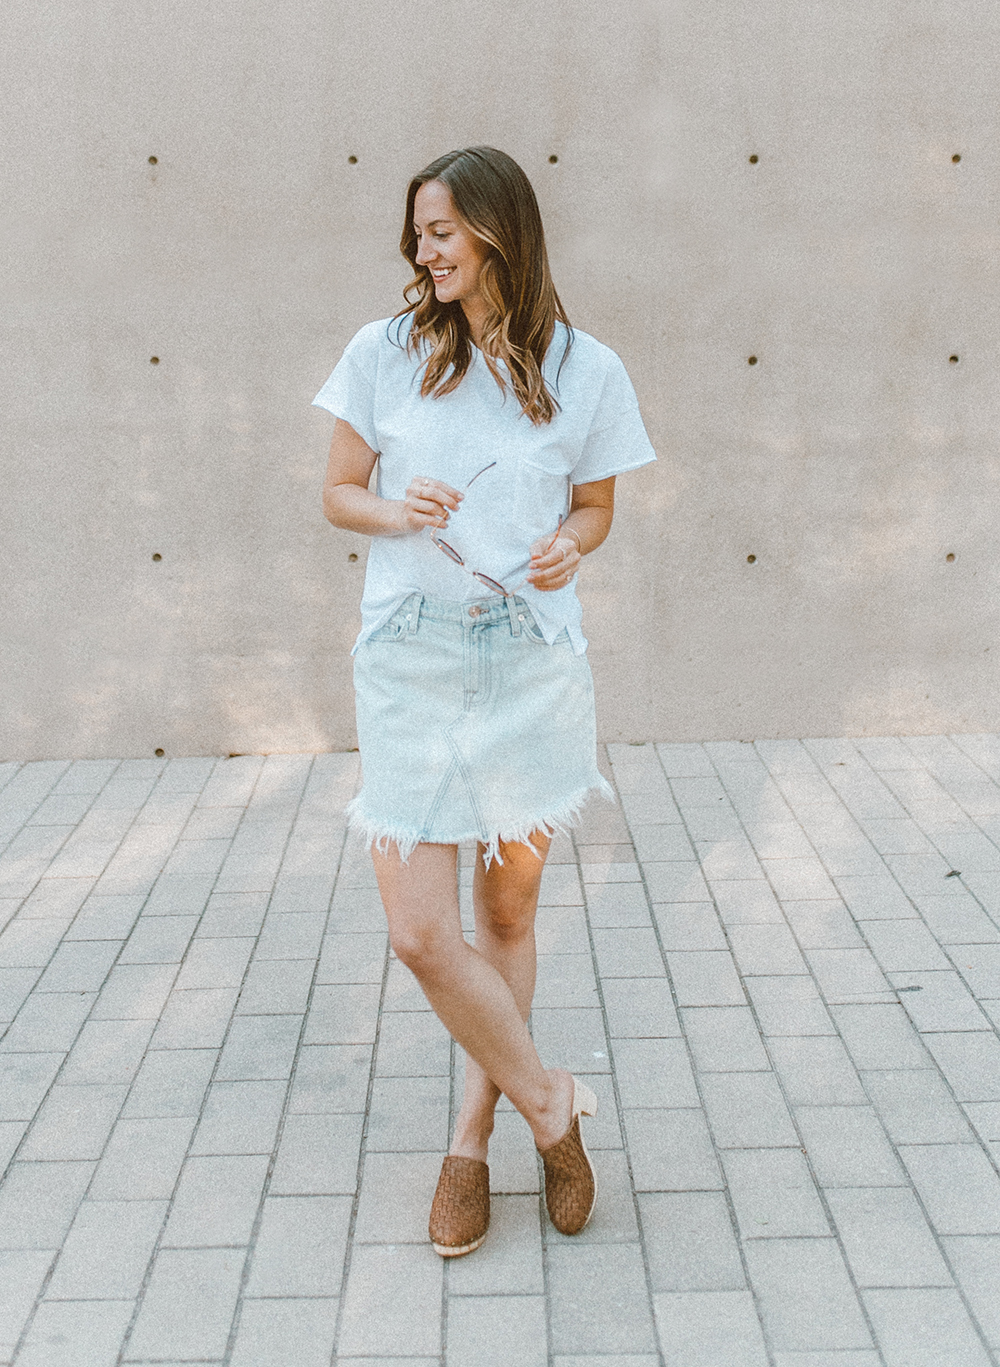 livvyland-blog-olivia-watson-trunk-club-spring-review-austin-texas-fashion-style-lifestyle-blogger-3